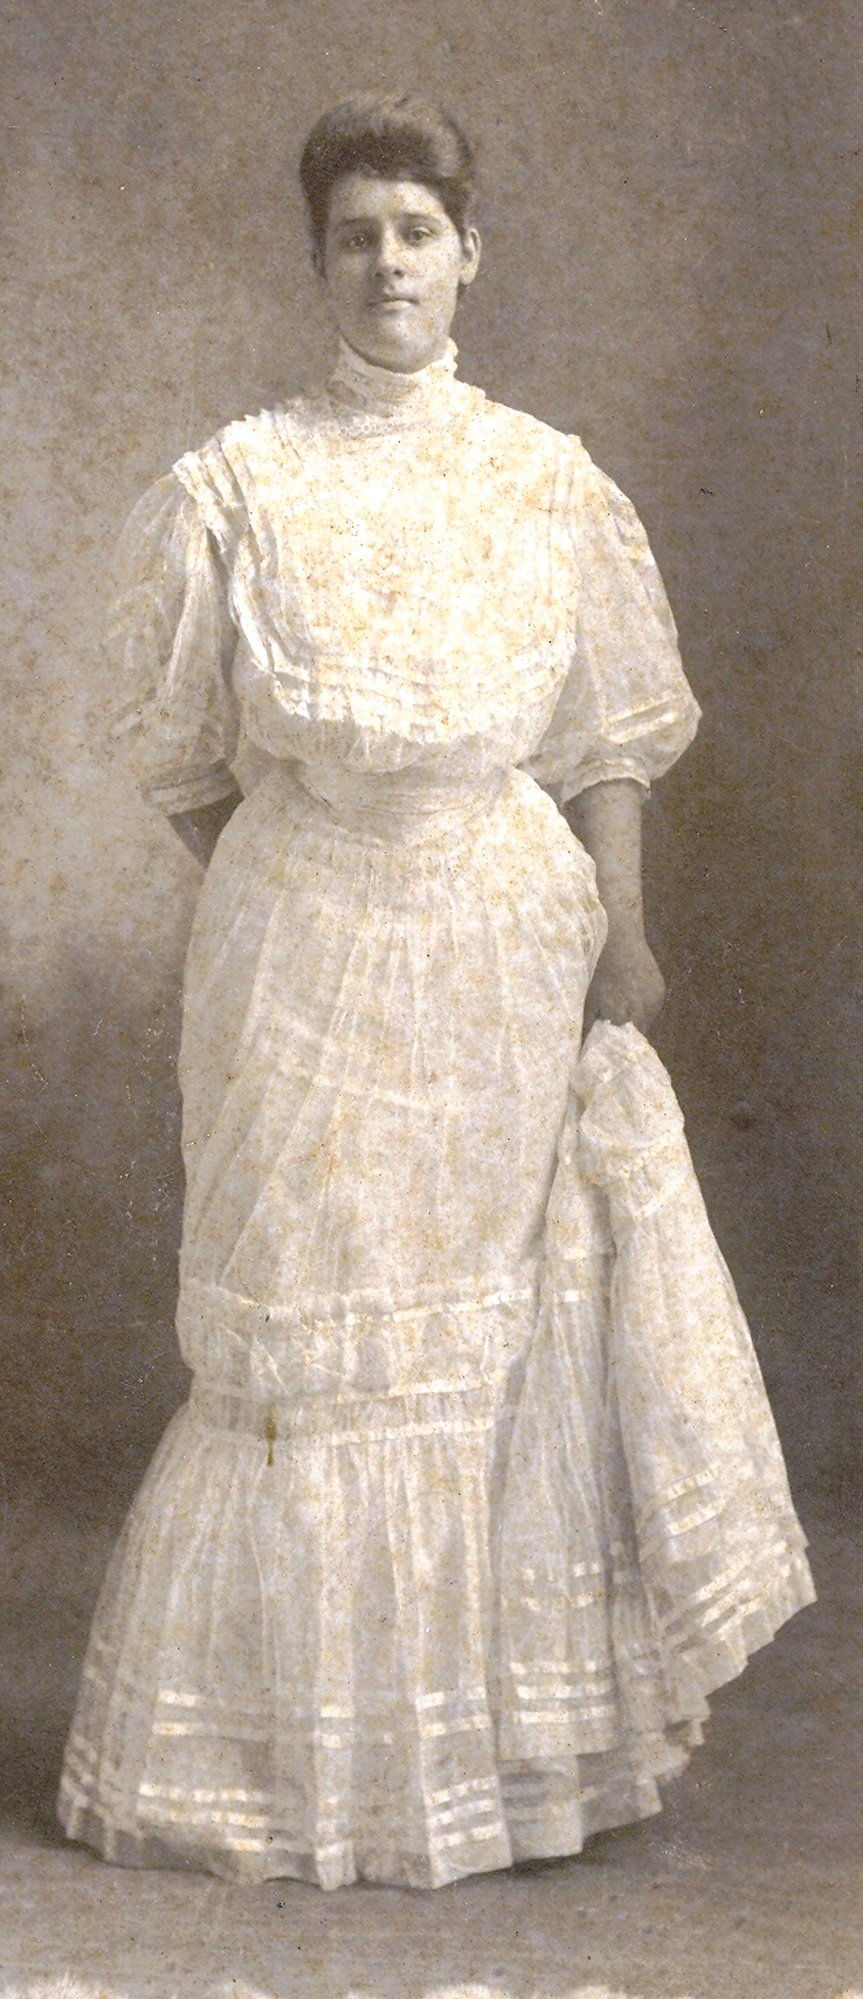 A graduate of Sumter Female Institute is seen in her graduation dress.